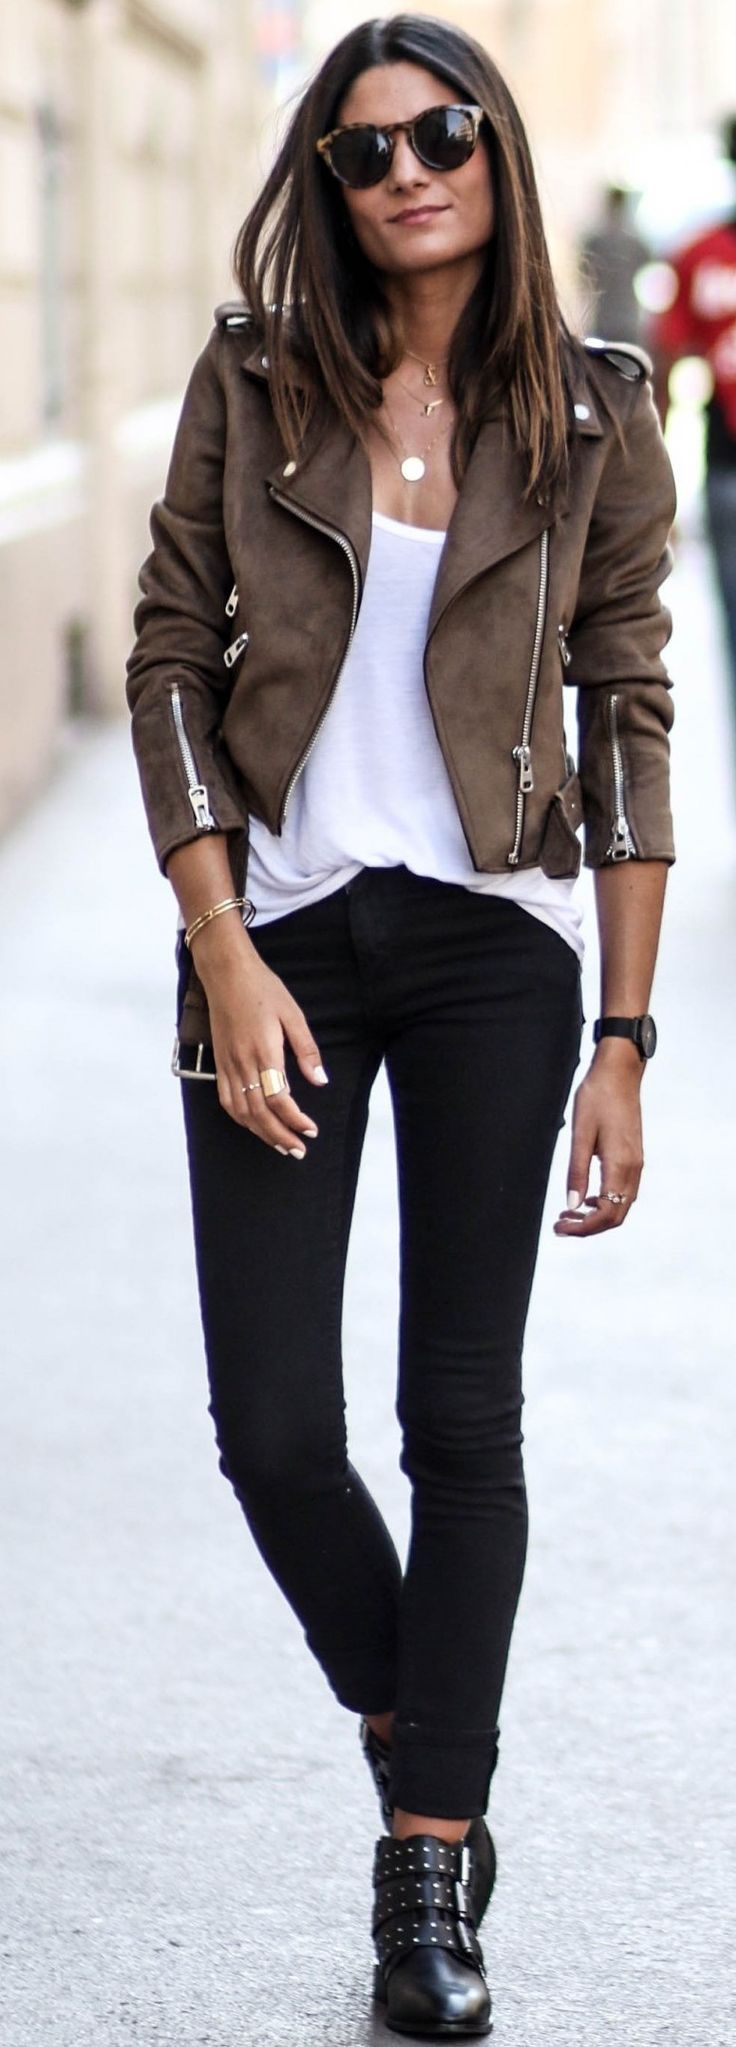 Best 25 fall street styles ideas on pinterest fall Fashion street style pinterest